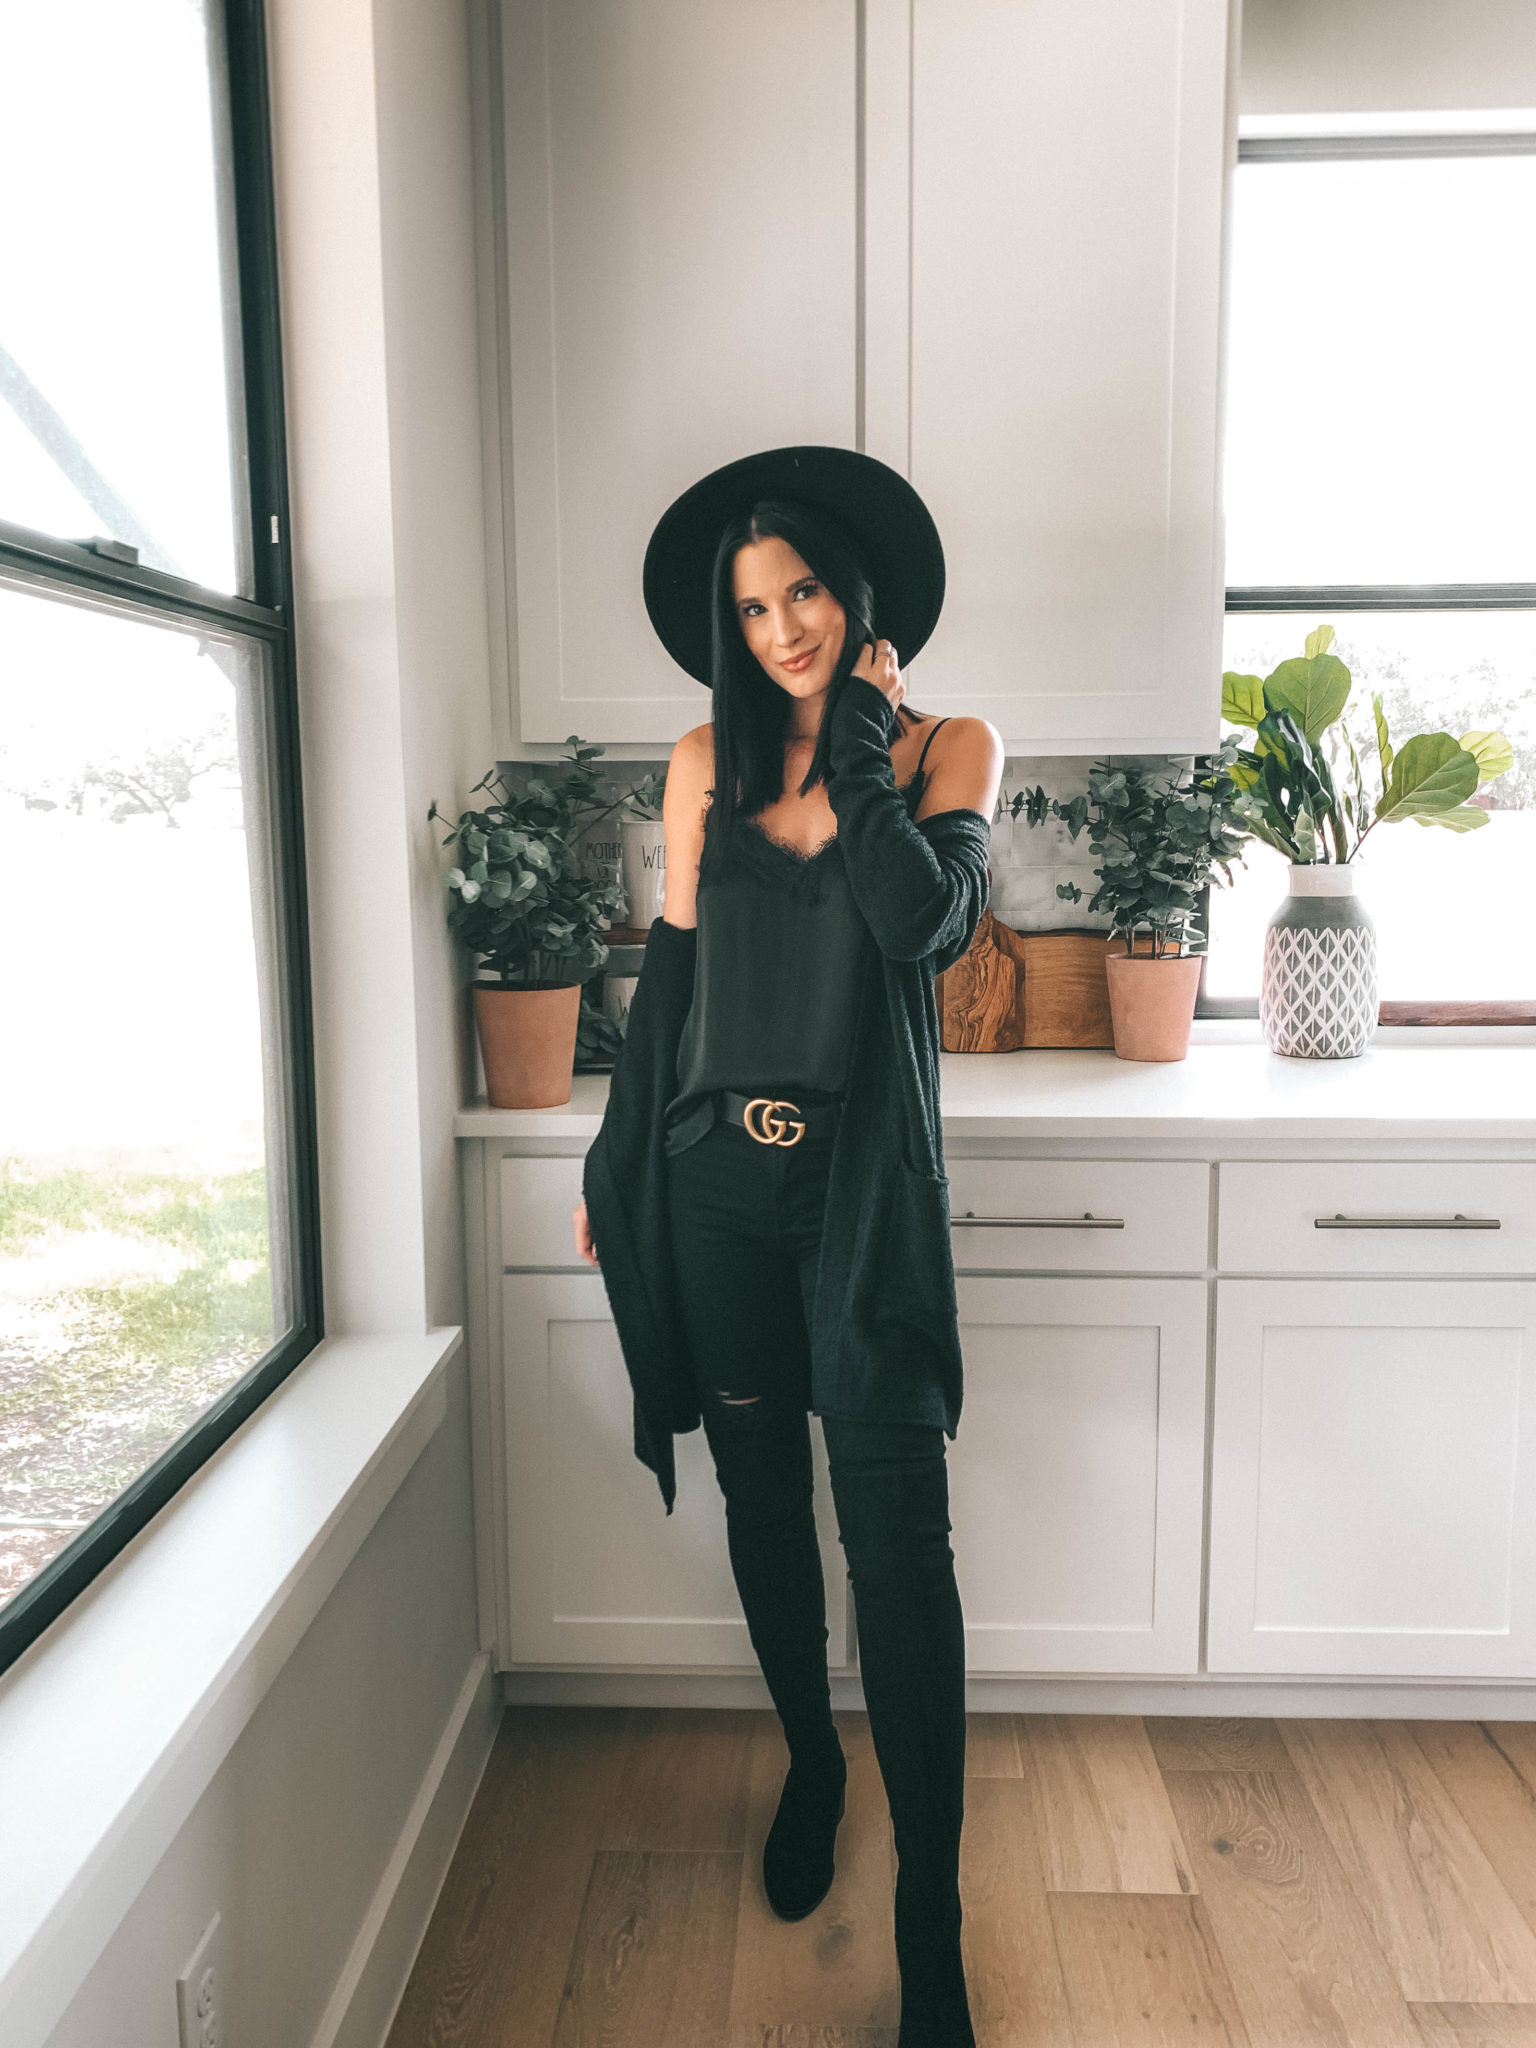 How to Style an All Black Outfit 3 Different Ways by popular Austin blog, Dressed to Kill: image of woman standing in her kitchen and wearing a black Articles of Society Sarah Skinny Ankle Jeans, black Lace Trim Satin Camisole Top, and black Barefoot Dreams CozyChic Lite® Circle Cardigan.